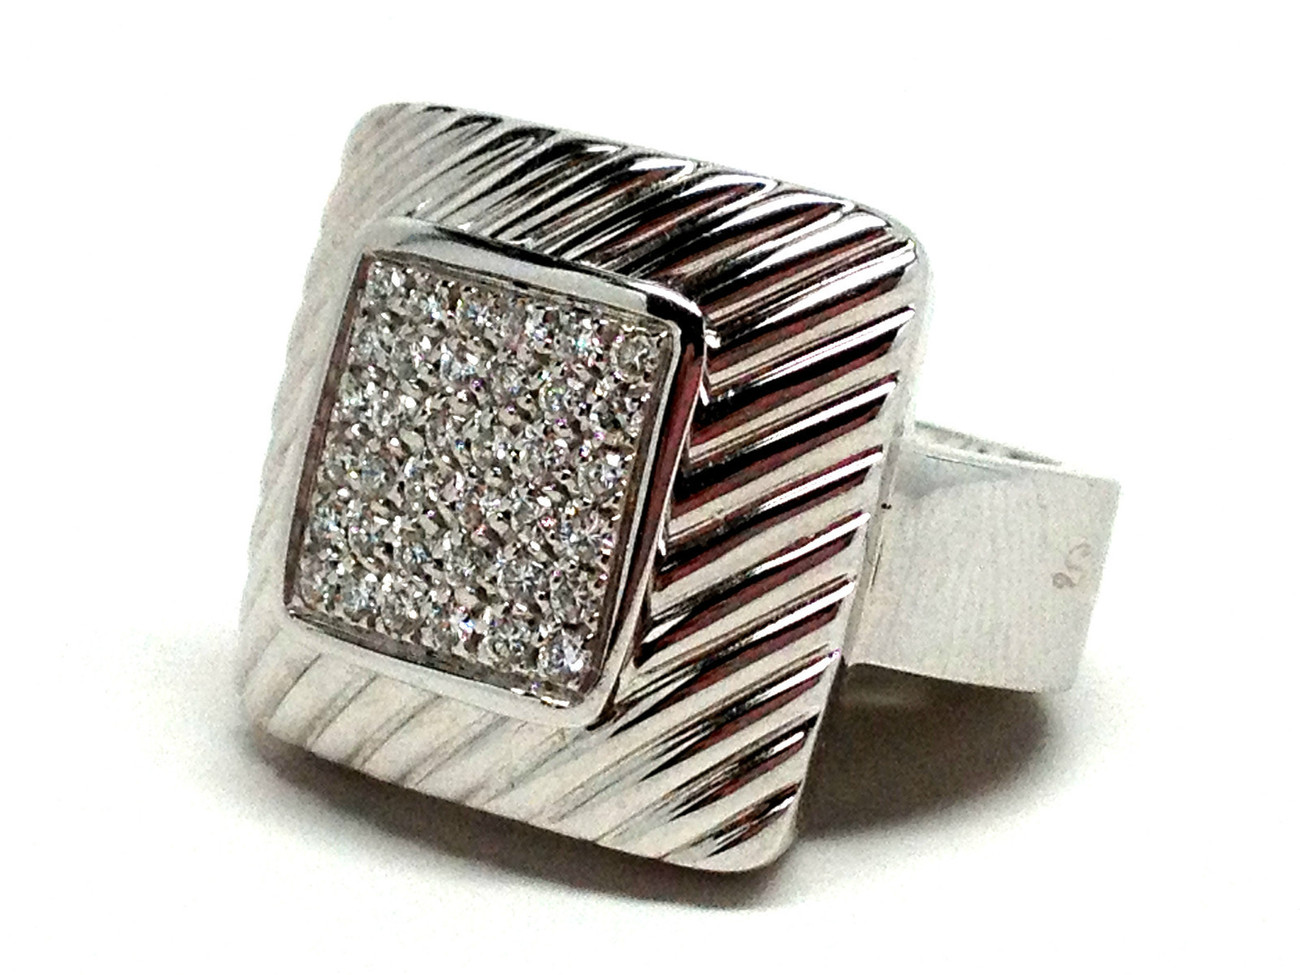 New SALVINI by DAMIANI 18K White Gold .40 cts Diamond Cluster Ring Size 9